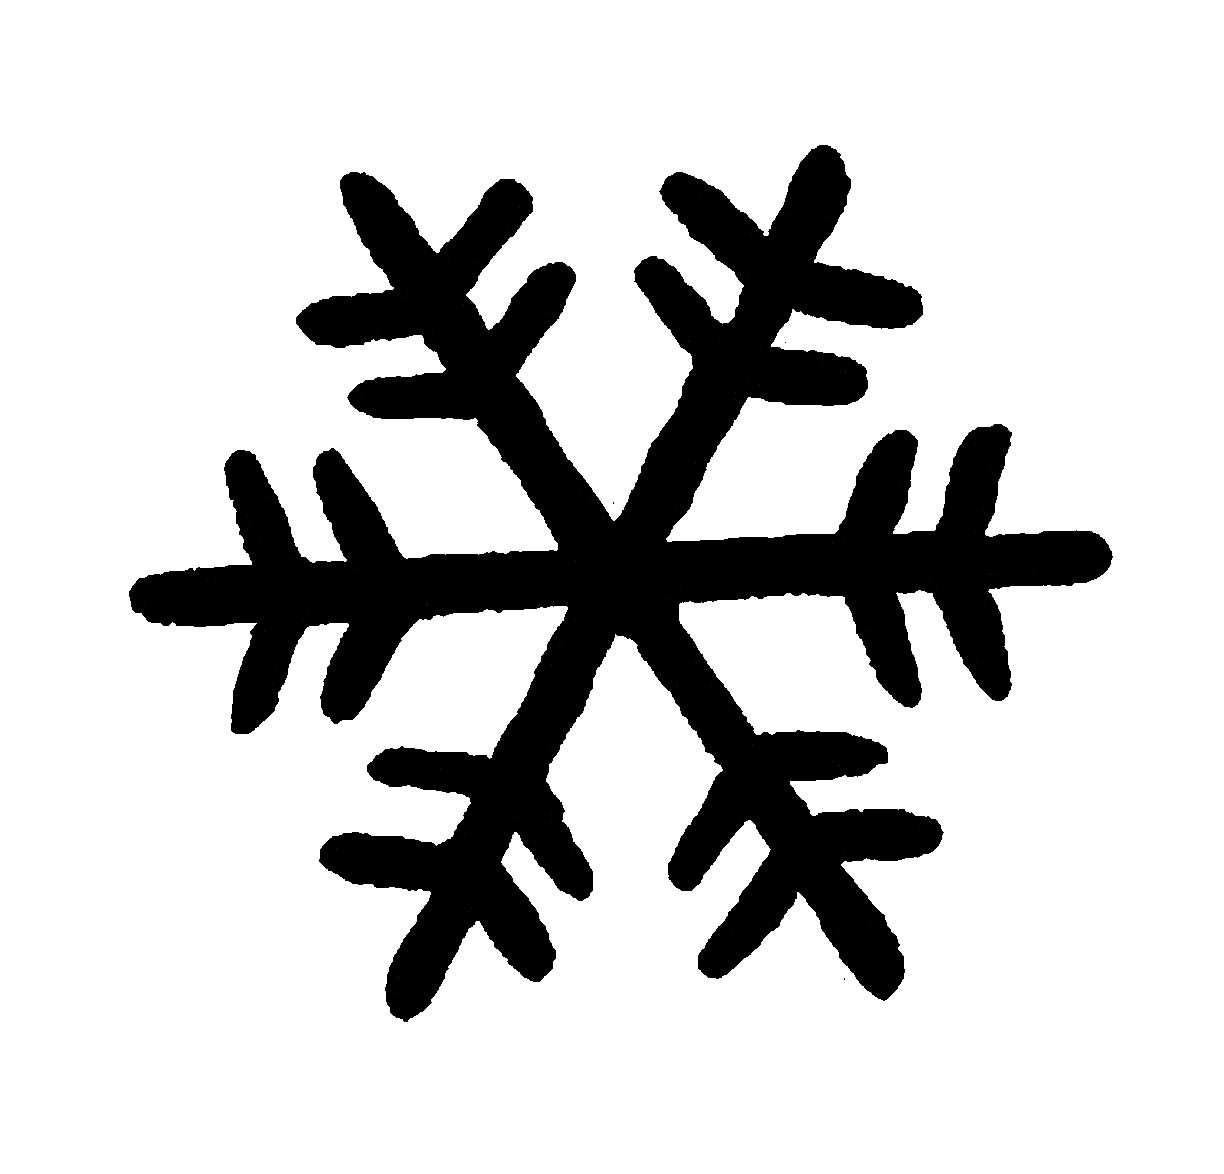 Silhouette Clipart Snow Flake